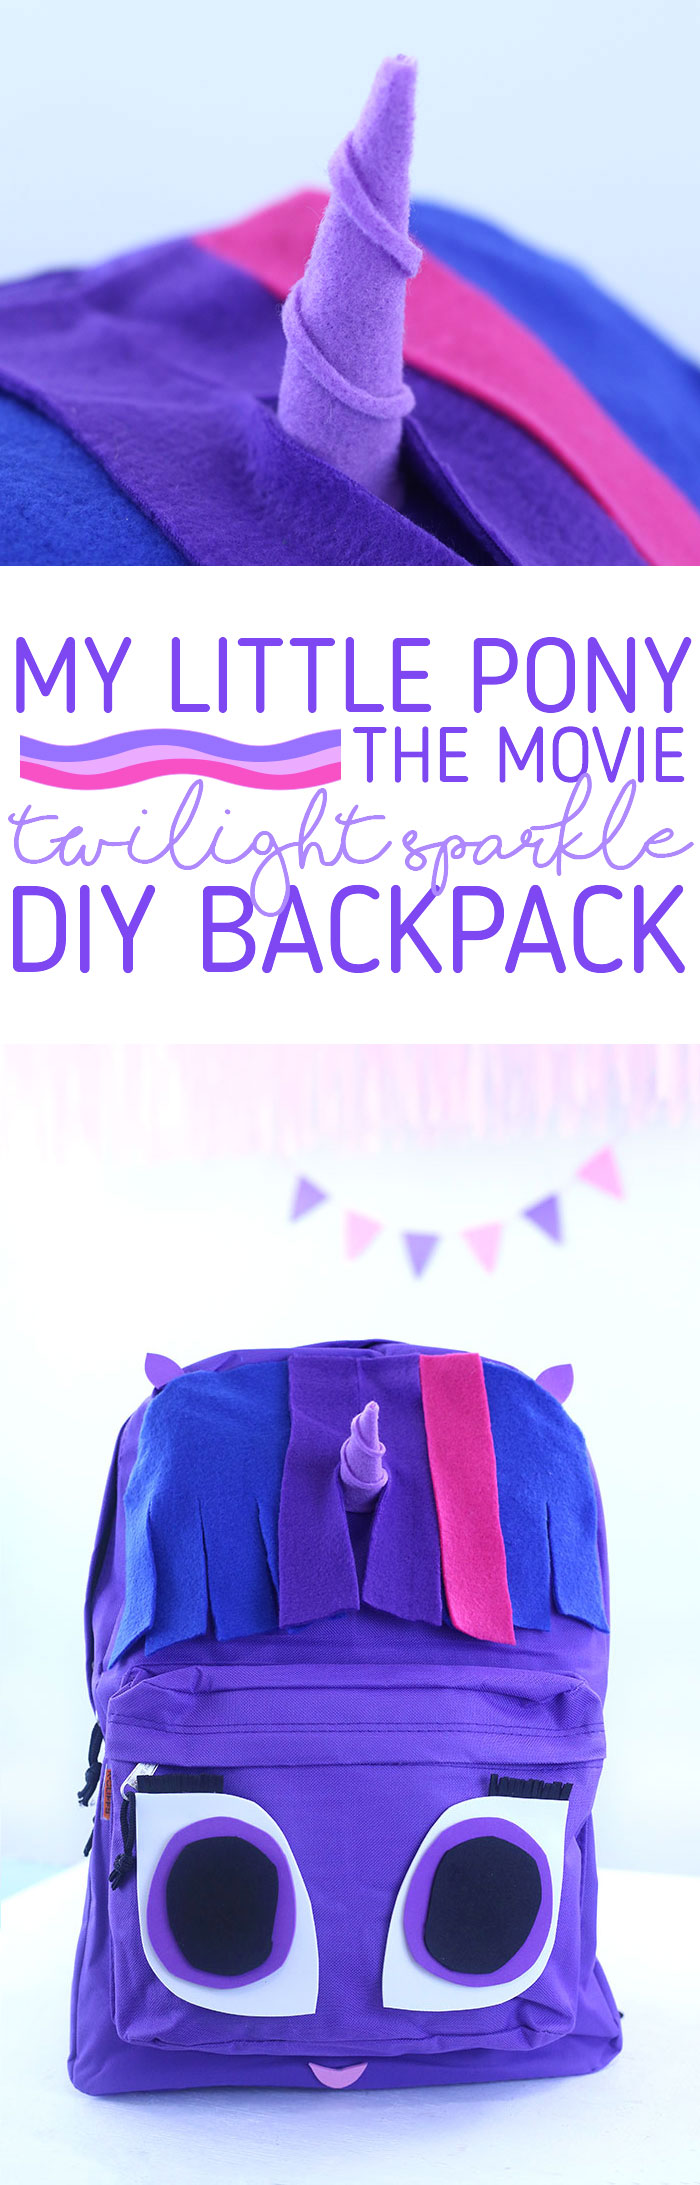 MLP DIY. Celebrate My Little Pony The Movie in theaters on 10/6 with this super cute Twilight Sparkle backpack DIY project.